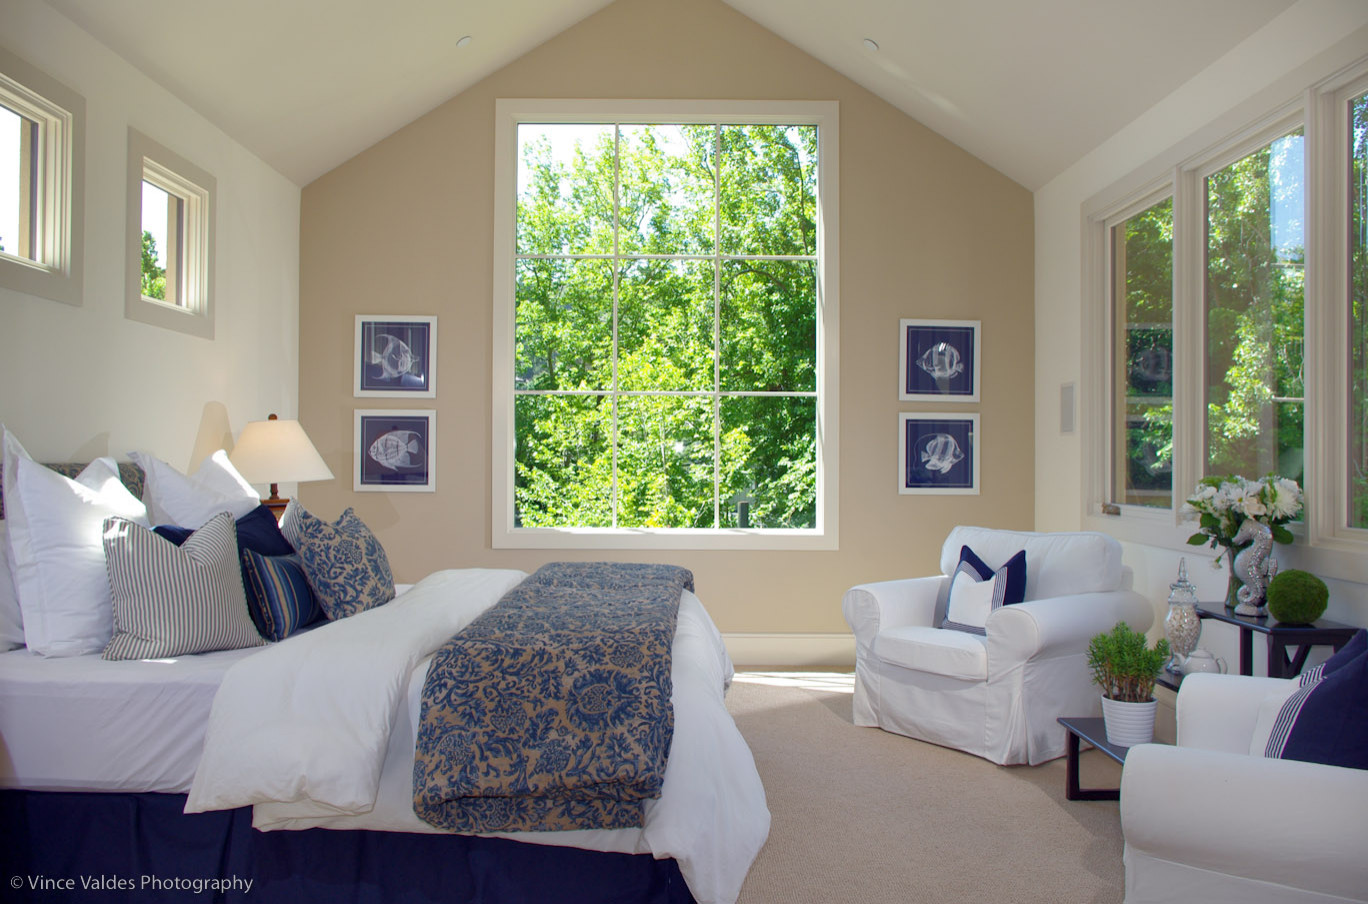 Organic Contemporary with Whimsical Pops